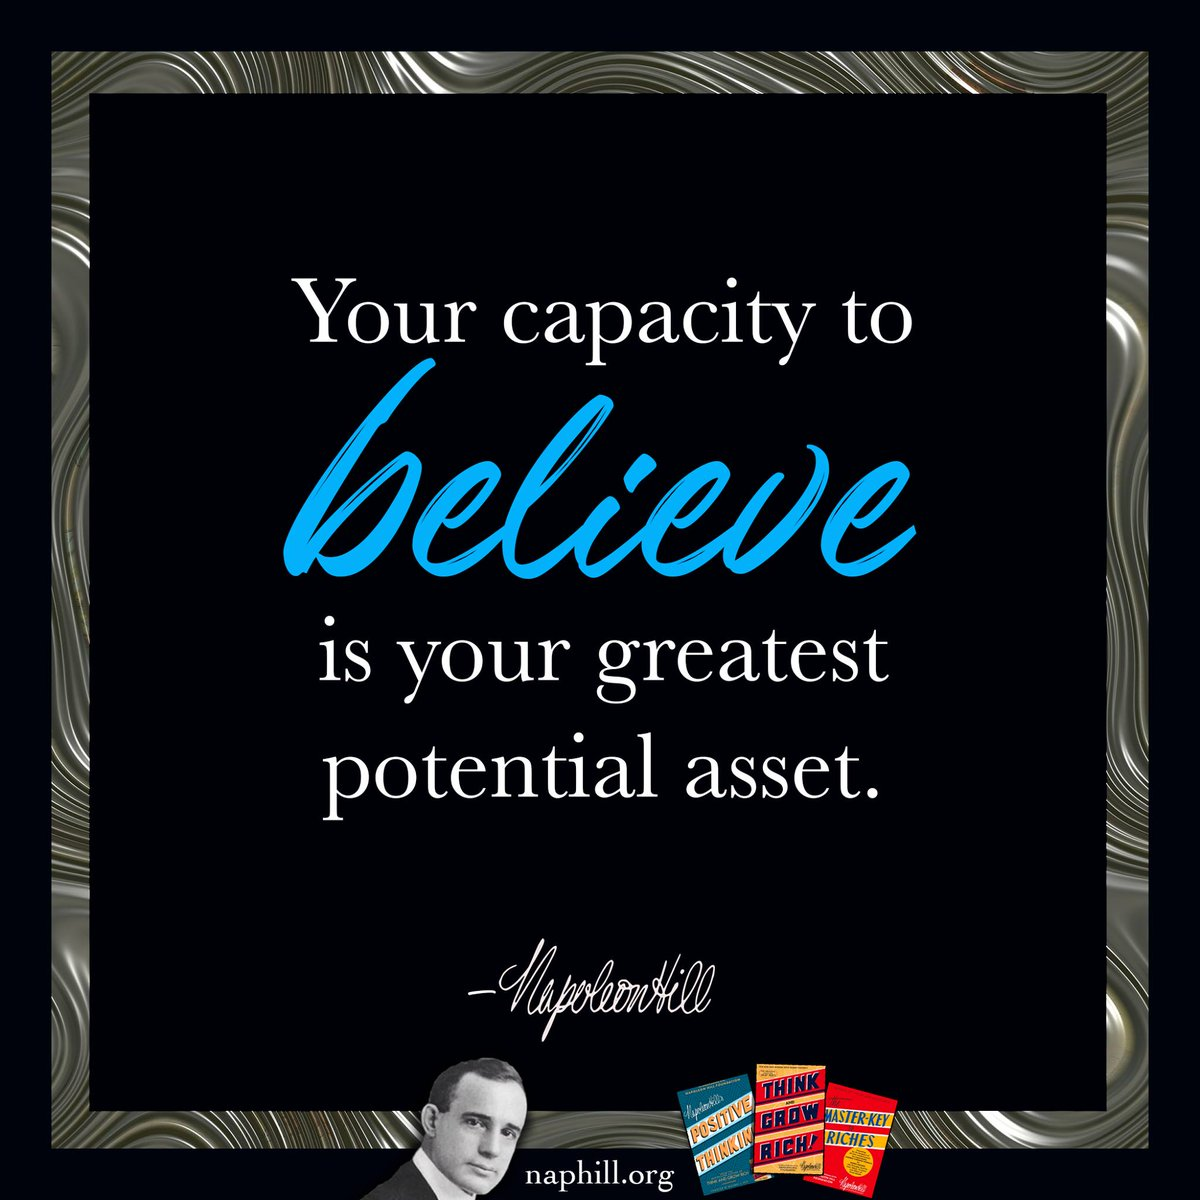 Your capacity to believe is your greatest potential asset. #NapoleonHill #ThinkandGrowRich #Success #Believe #Assets https://t.co/bhxgsLH0yV